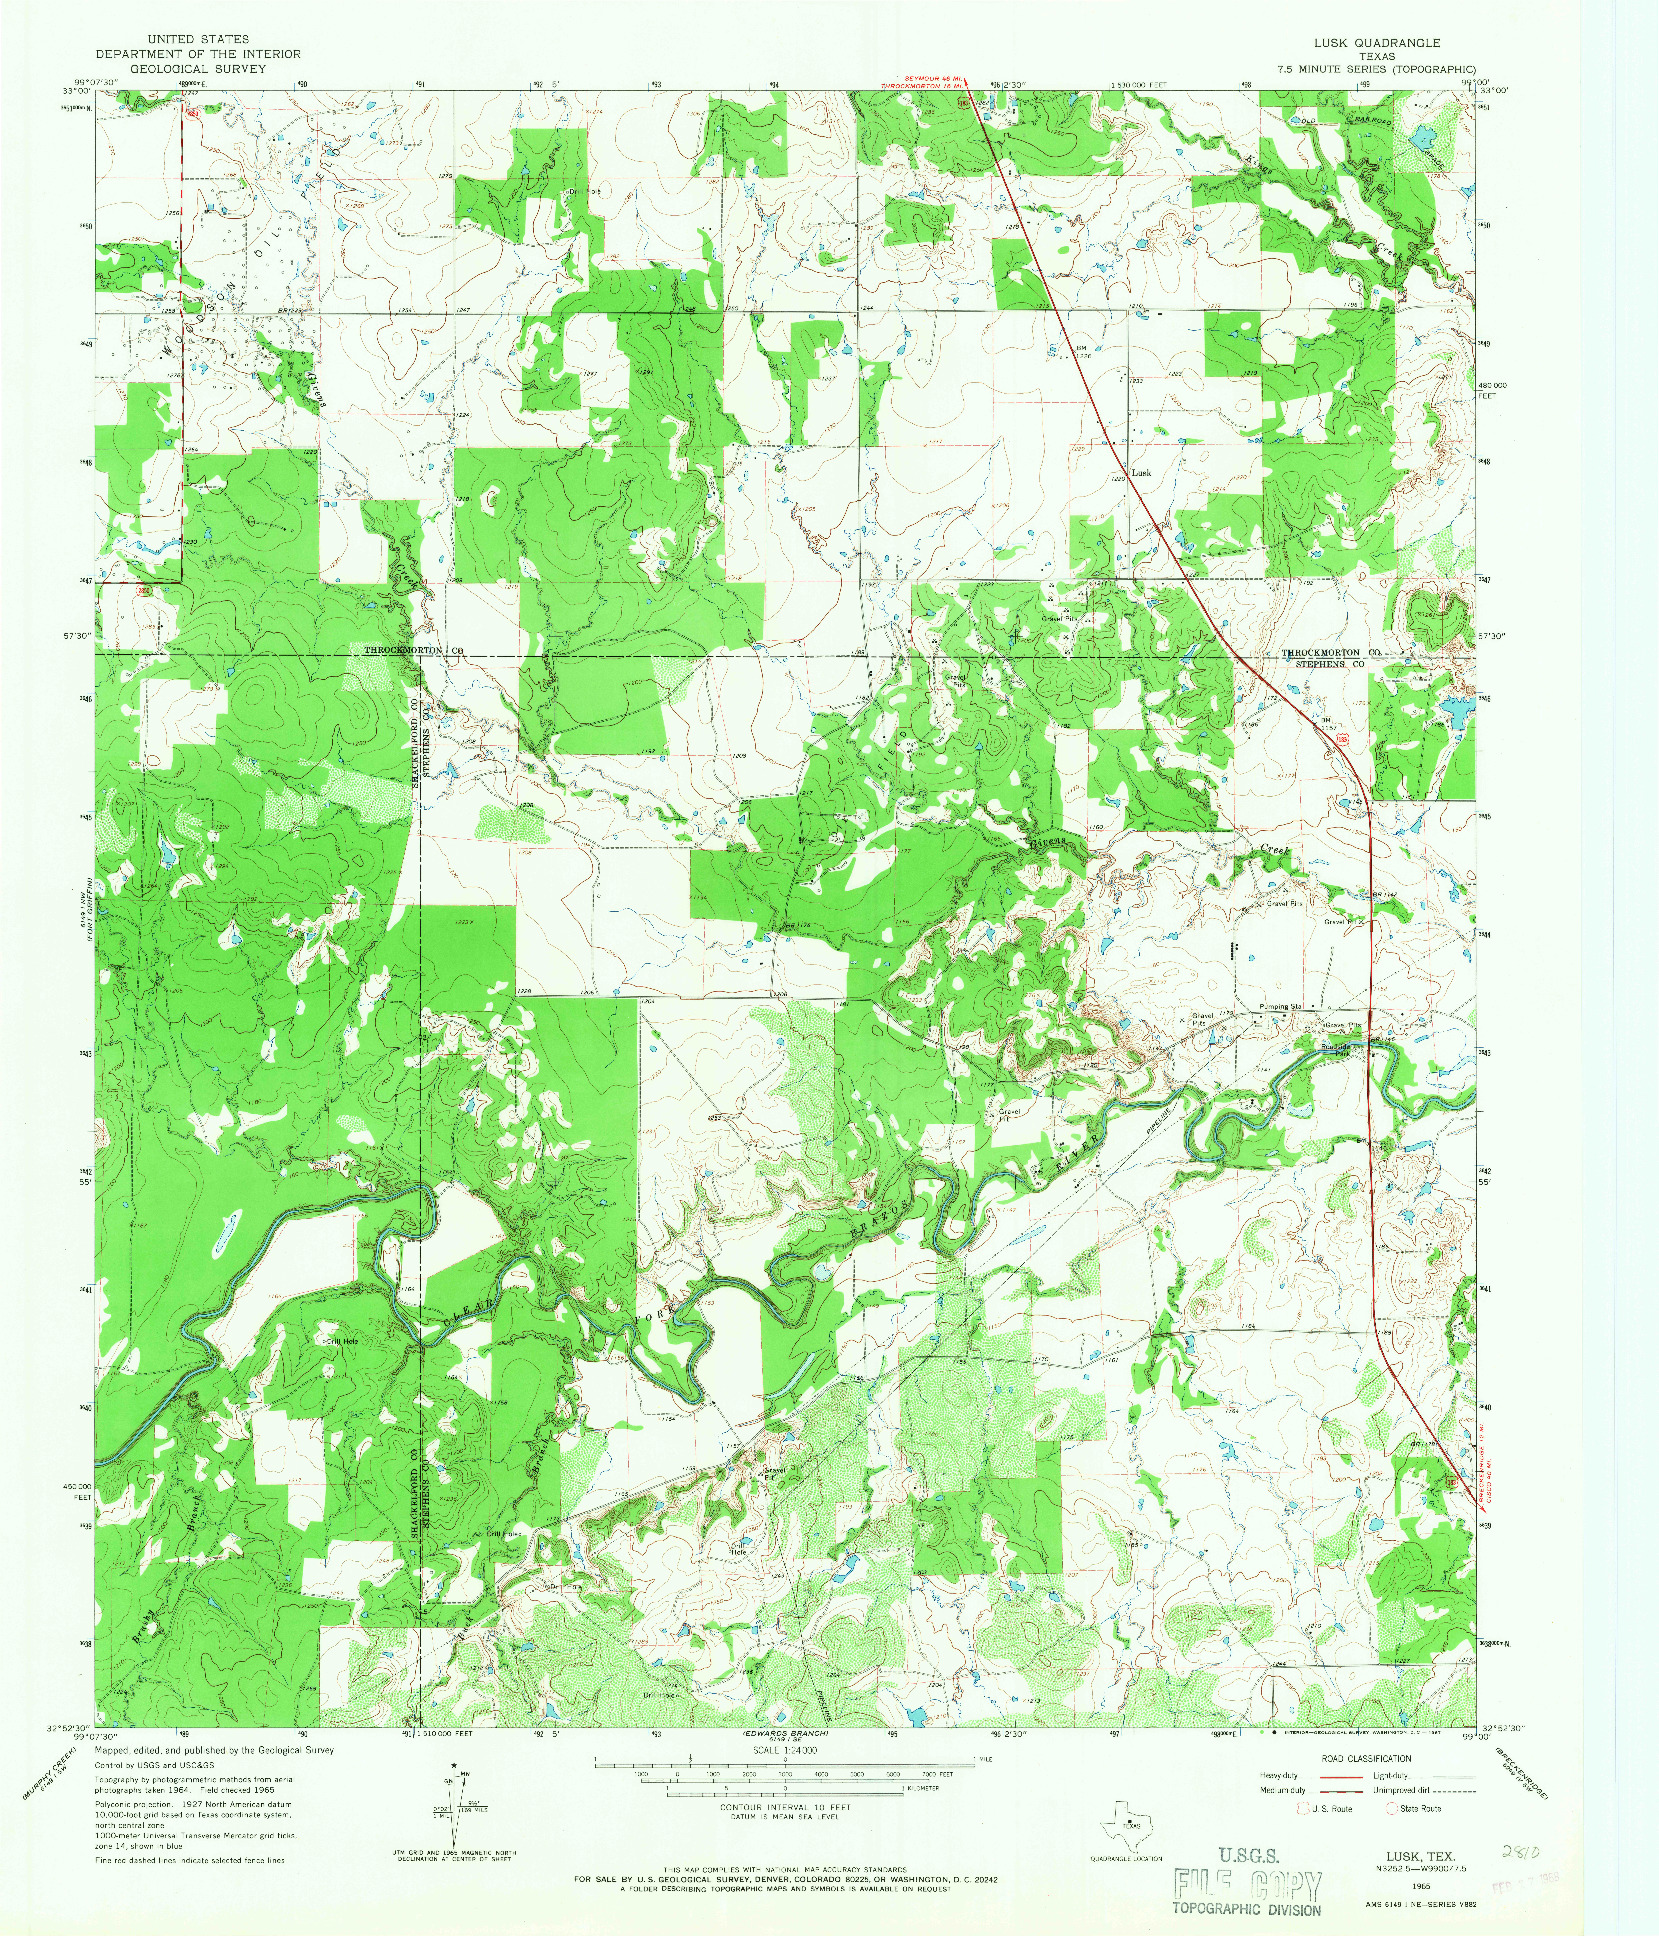 USGS 1:24000-SCALE QUADRANGLE FOR LUSK, TX 1965 on interstate 30 map, interstate map of mississippi and alabama, interstate 85 map, lincoln way map, new jersey route 1 map, interstate highway map, interstate 526 map, interstate 75 map, interstate 70 map, interstate 27 map, us highway 78 map, interstate 80 map, interstate 25 map, interstate 10 map, interstate 422 map, interstate 26 map, interstate 44 map, interstate 74 map,